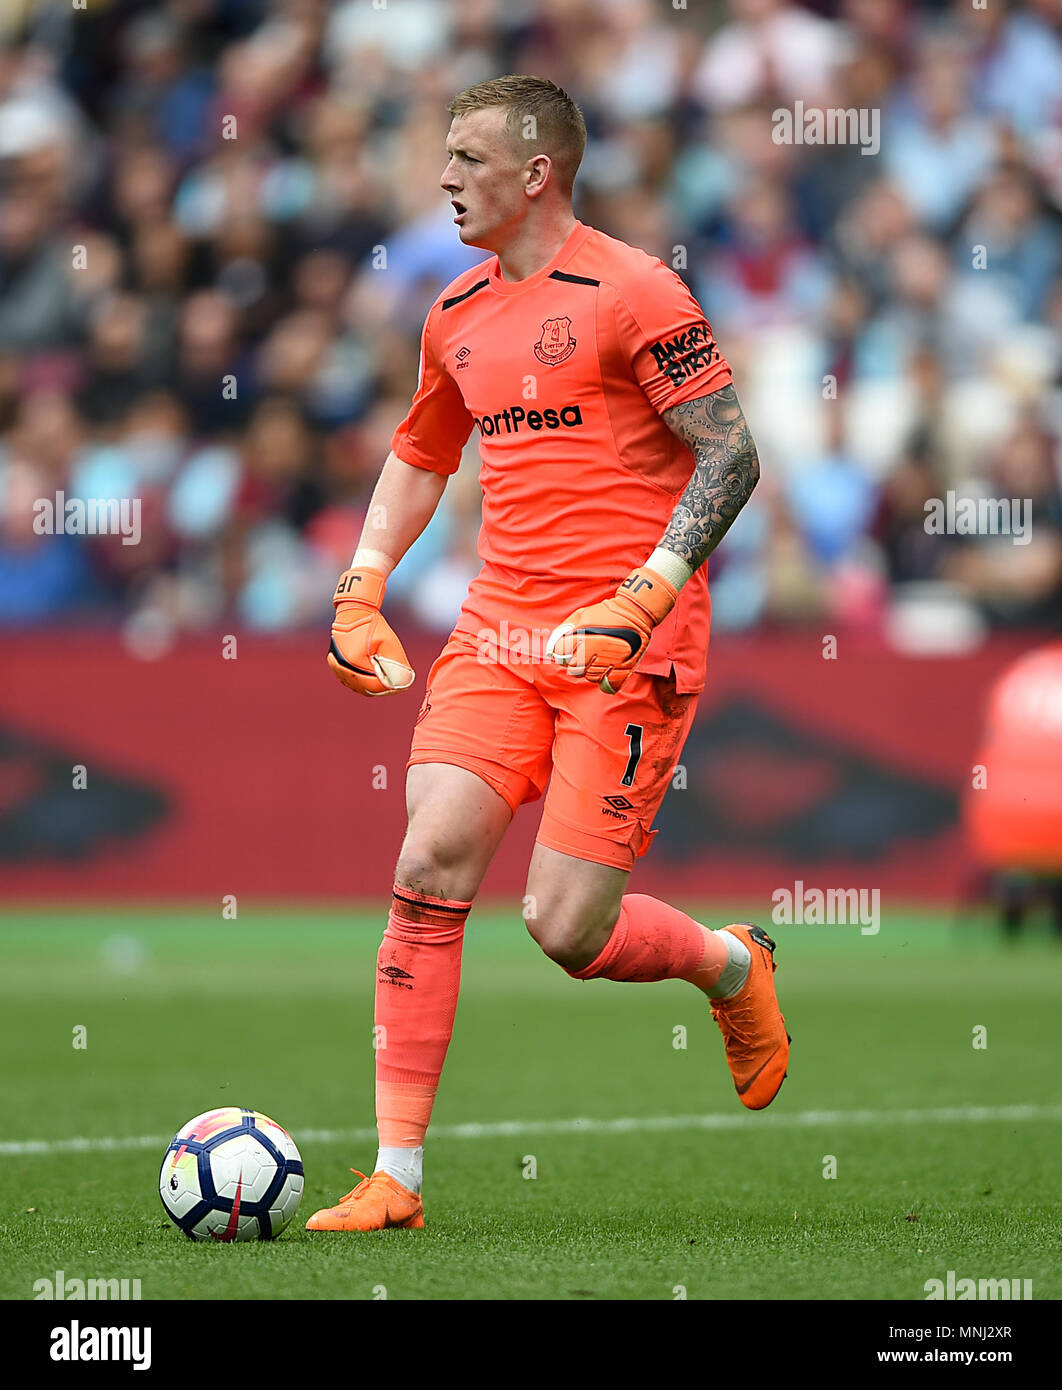 Everton goalkeeper Jordan Pickford Stock Photo  185408911   Alamy Everton goalkeeper Jordan Pickford